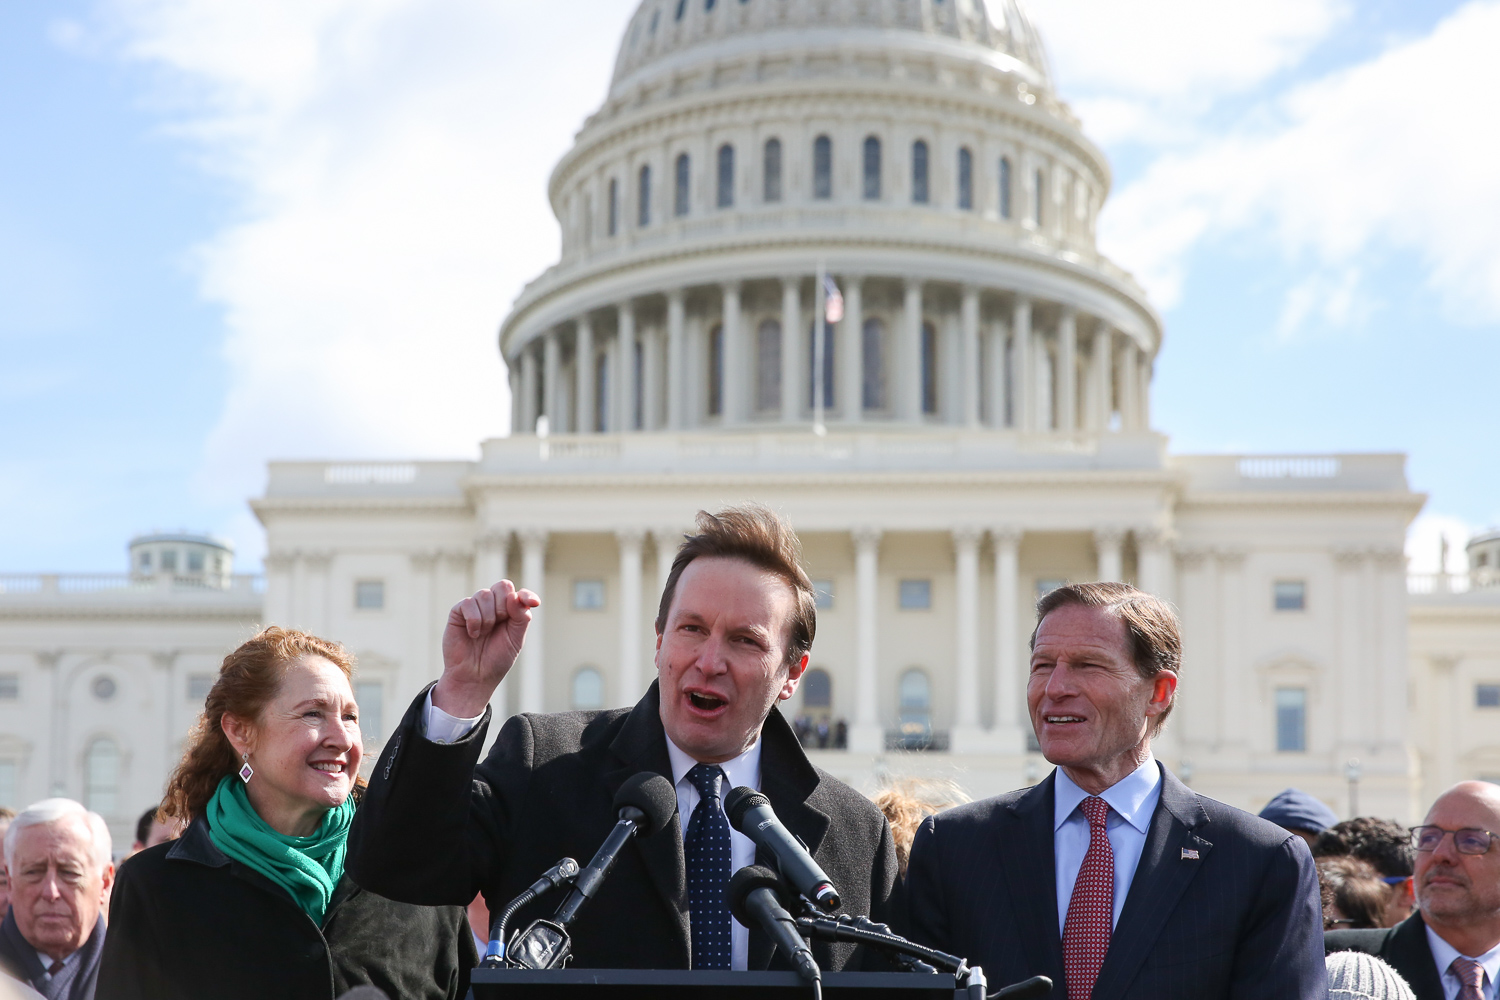 From left, Rep. Elizabeth Esty (D-Connecticut), Sen. Chris Murphy, (D-Connecticut) and Sen. Richard Blumenthal (D-Connecticut) spoke to the rally.{ } (Amanda Andrade-Rhoades/DC Refined)